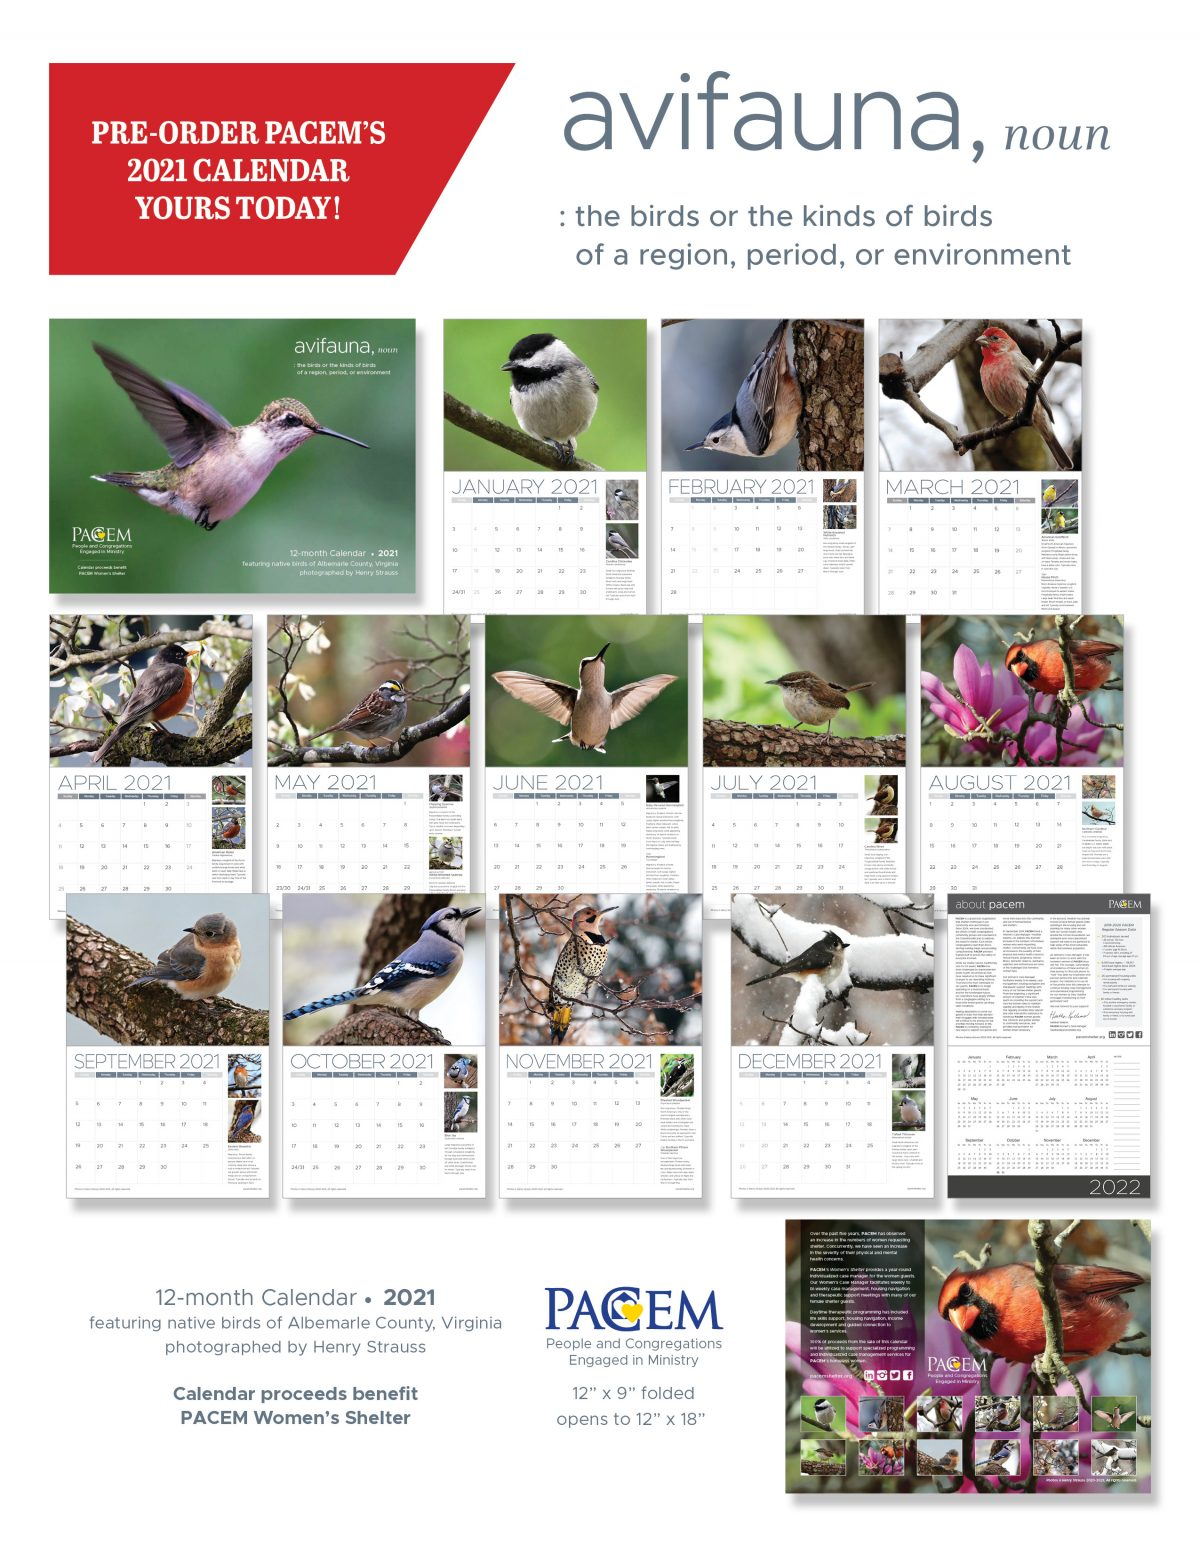 ORDER PACEM'S 12-month 2021 CALENDAR, featuring native birds of Albemarle County, Virginia